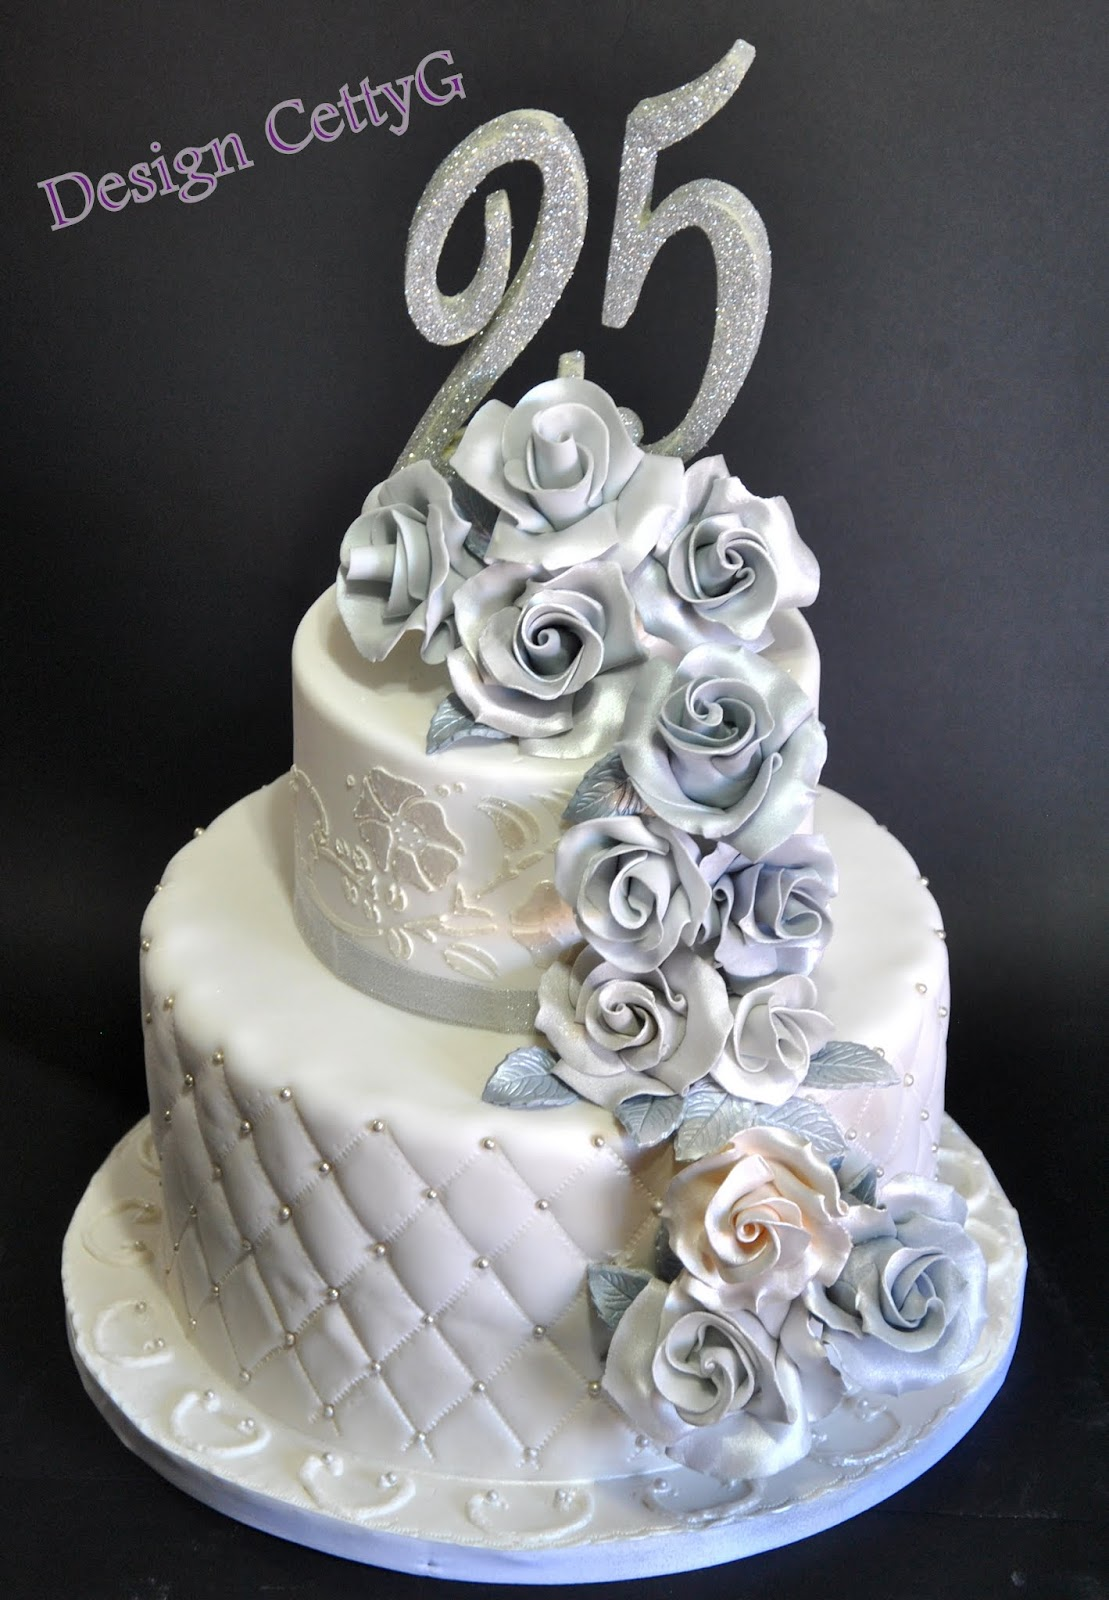 Preferenza Le torte decorate di Cetty G: 25° Anniversario RM77